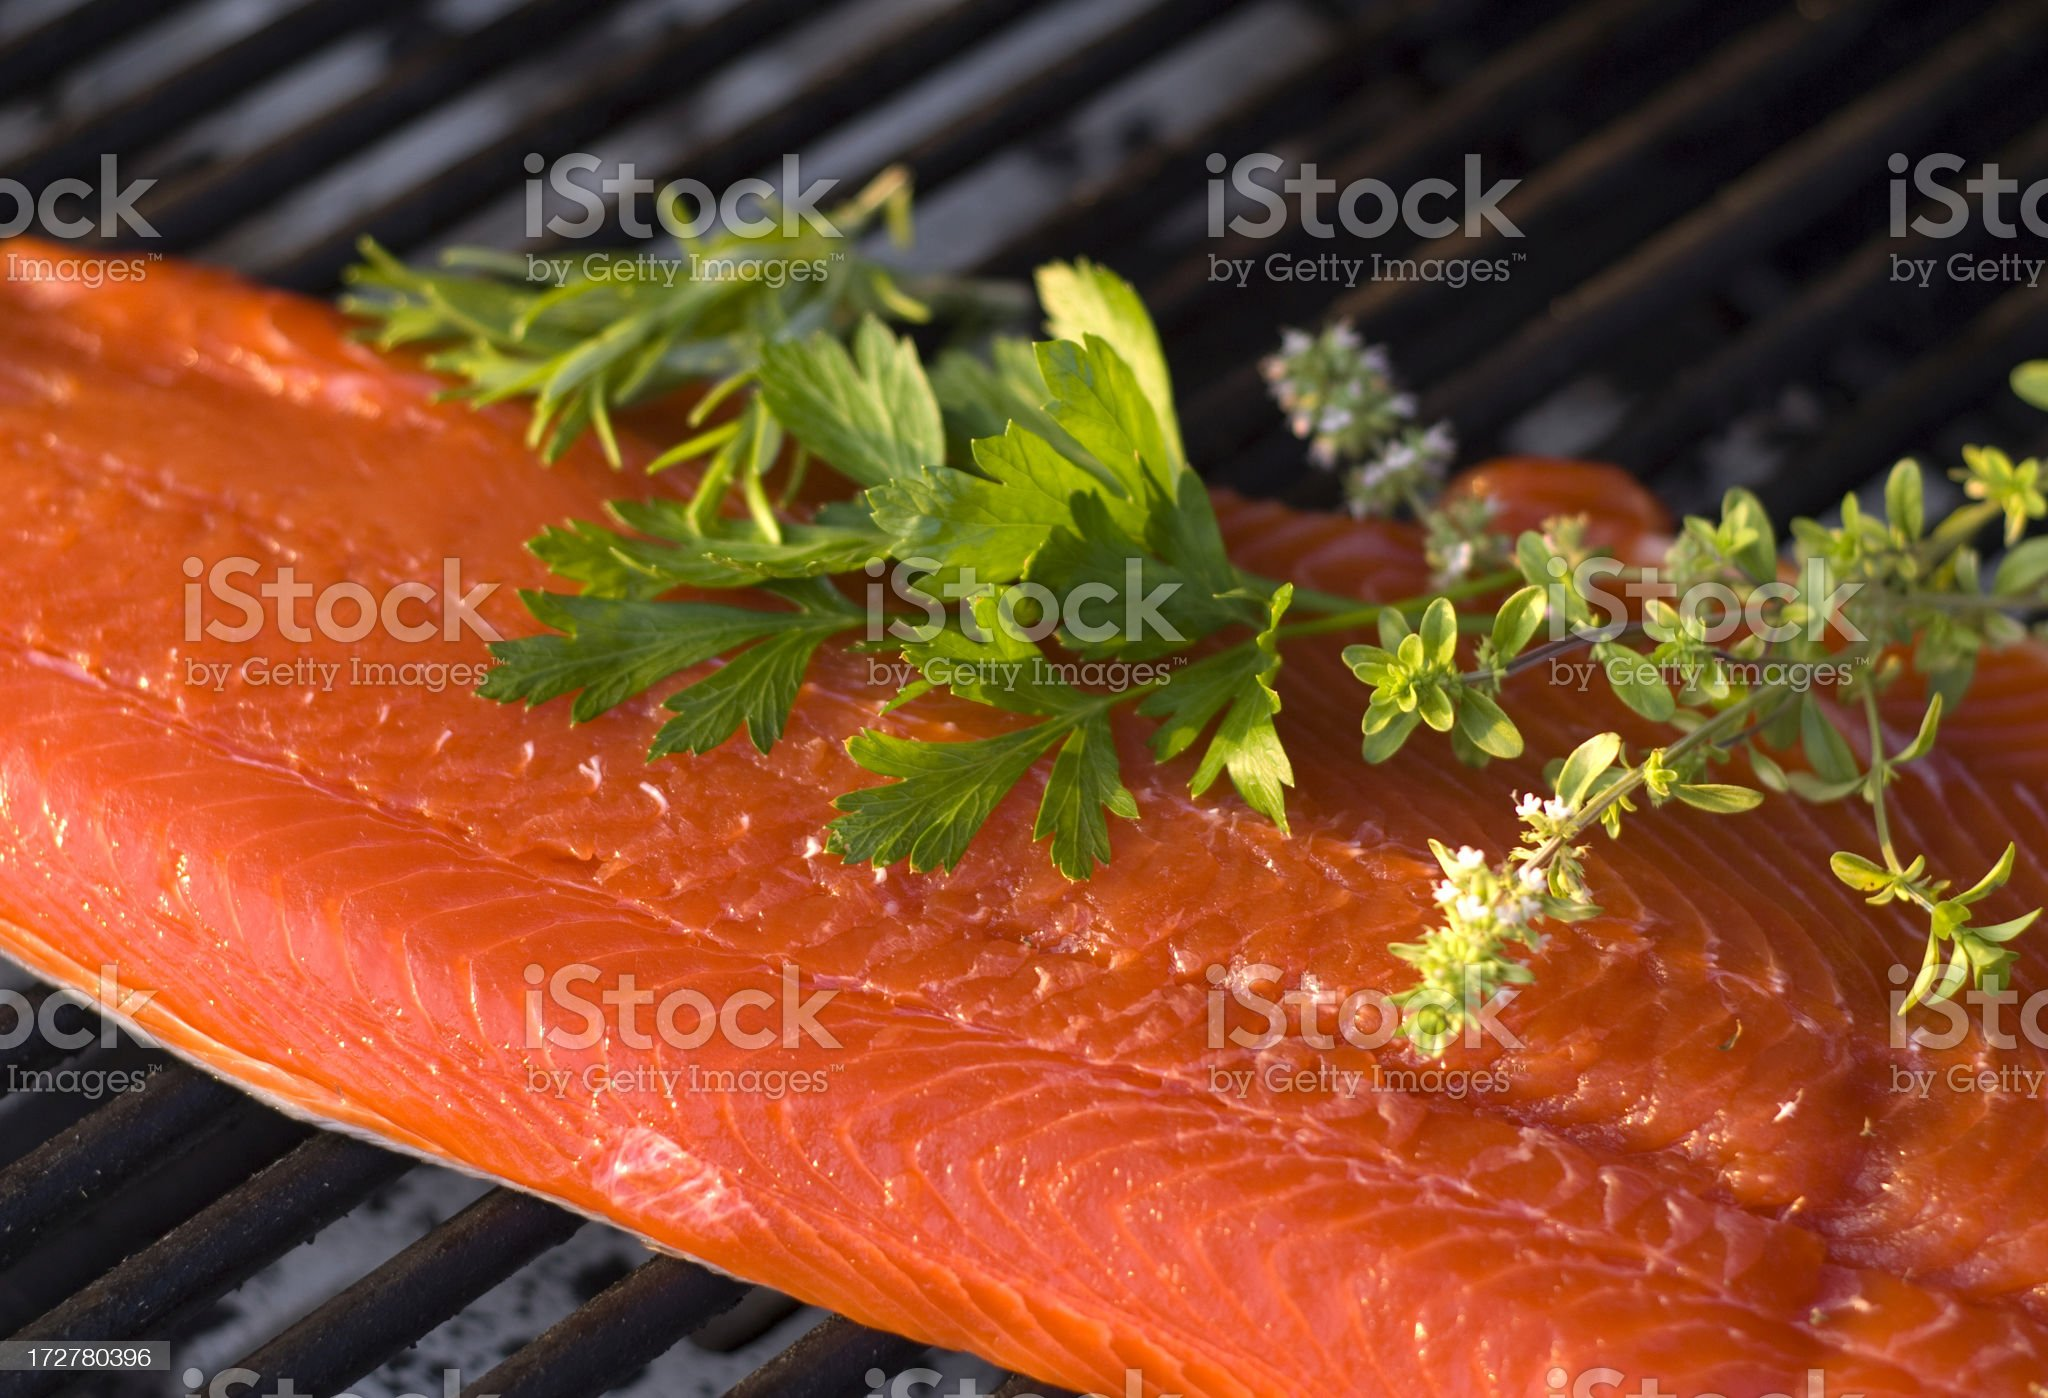 Cooking Fresh Seafood, Raw Sockeye Salmon Fish Fillet & Barbeque Grill royalty-free stock photo